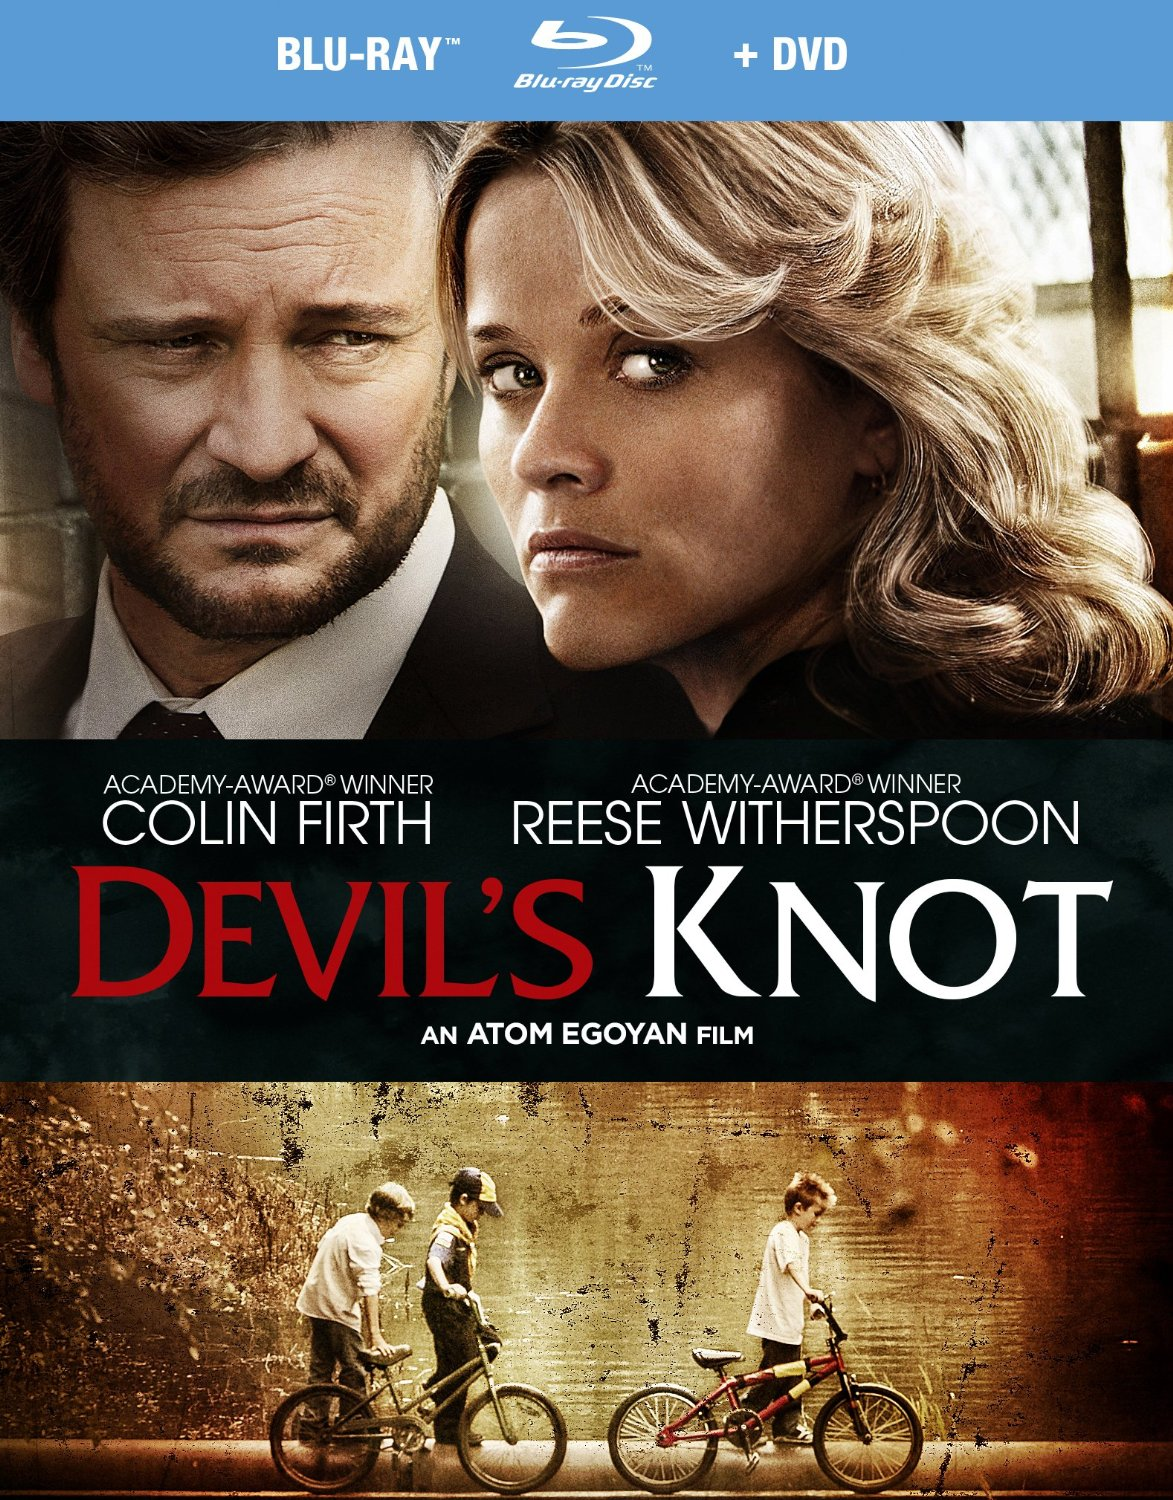 Image Entertainment Presents Devil's Knot on Home Entertainment Image Entertainment Presents Devil's Knot on Home Entertainment